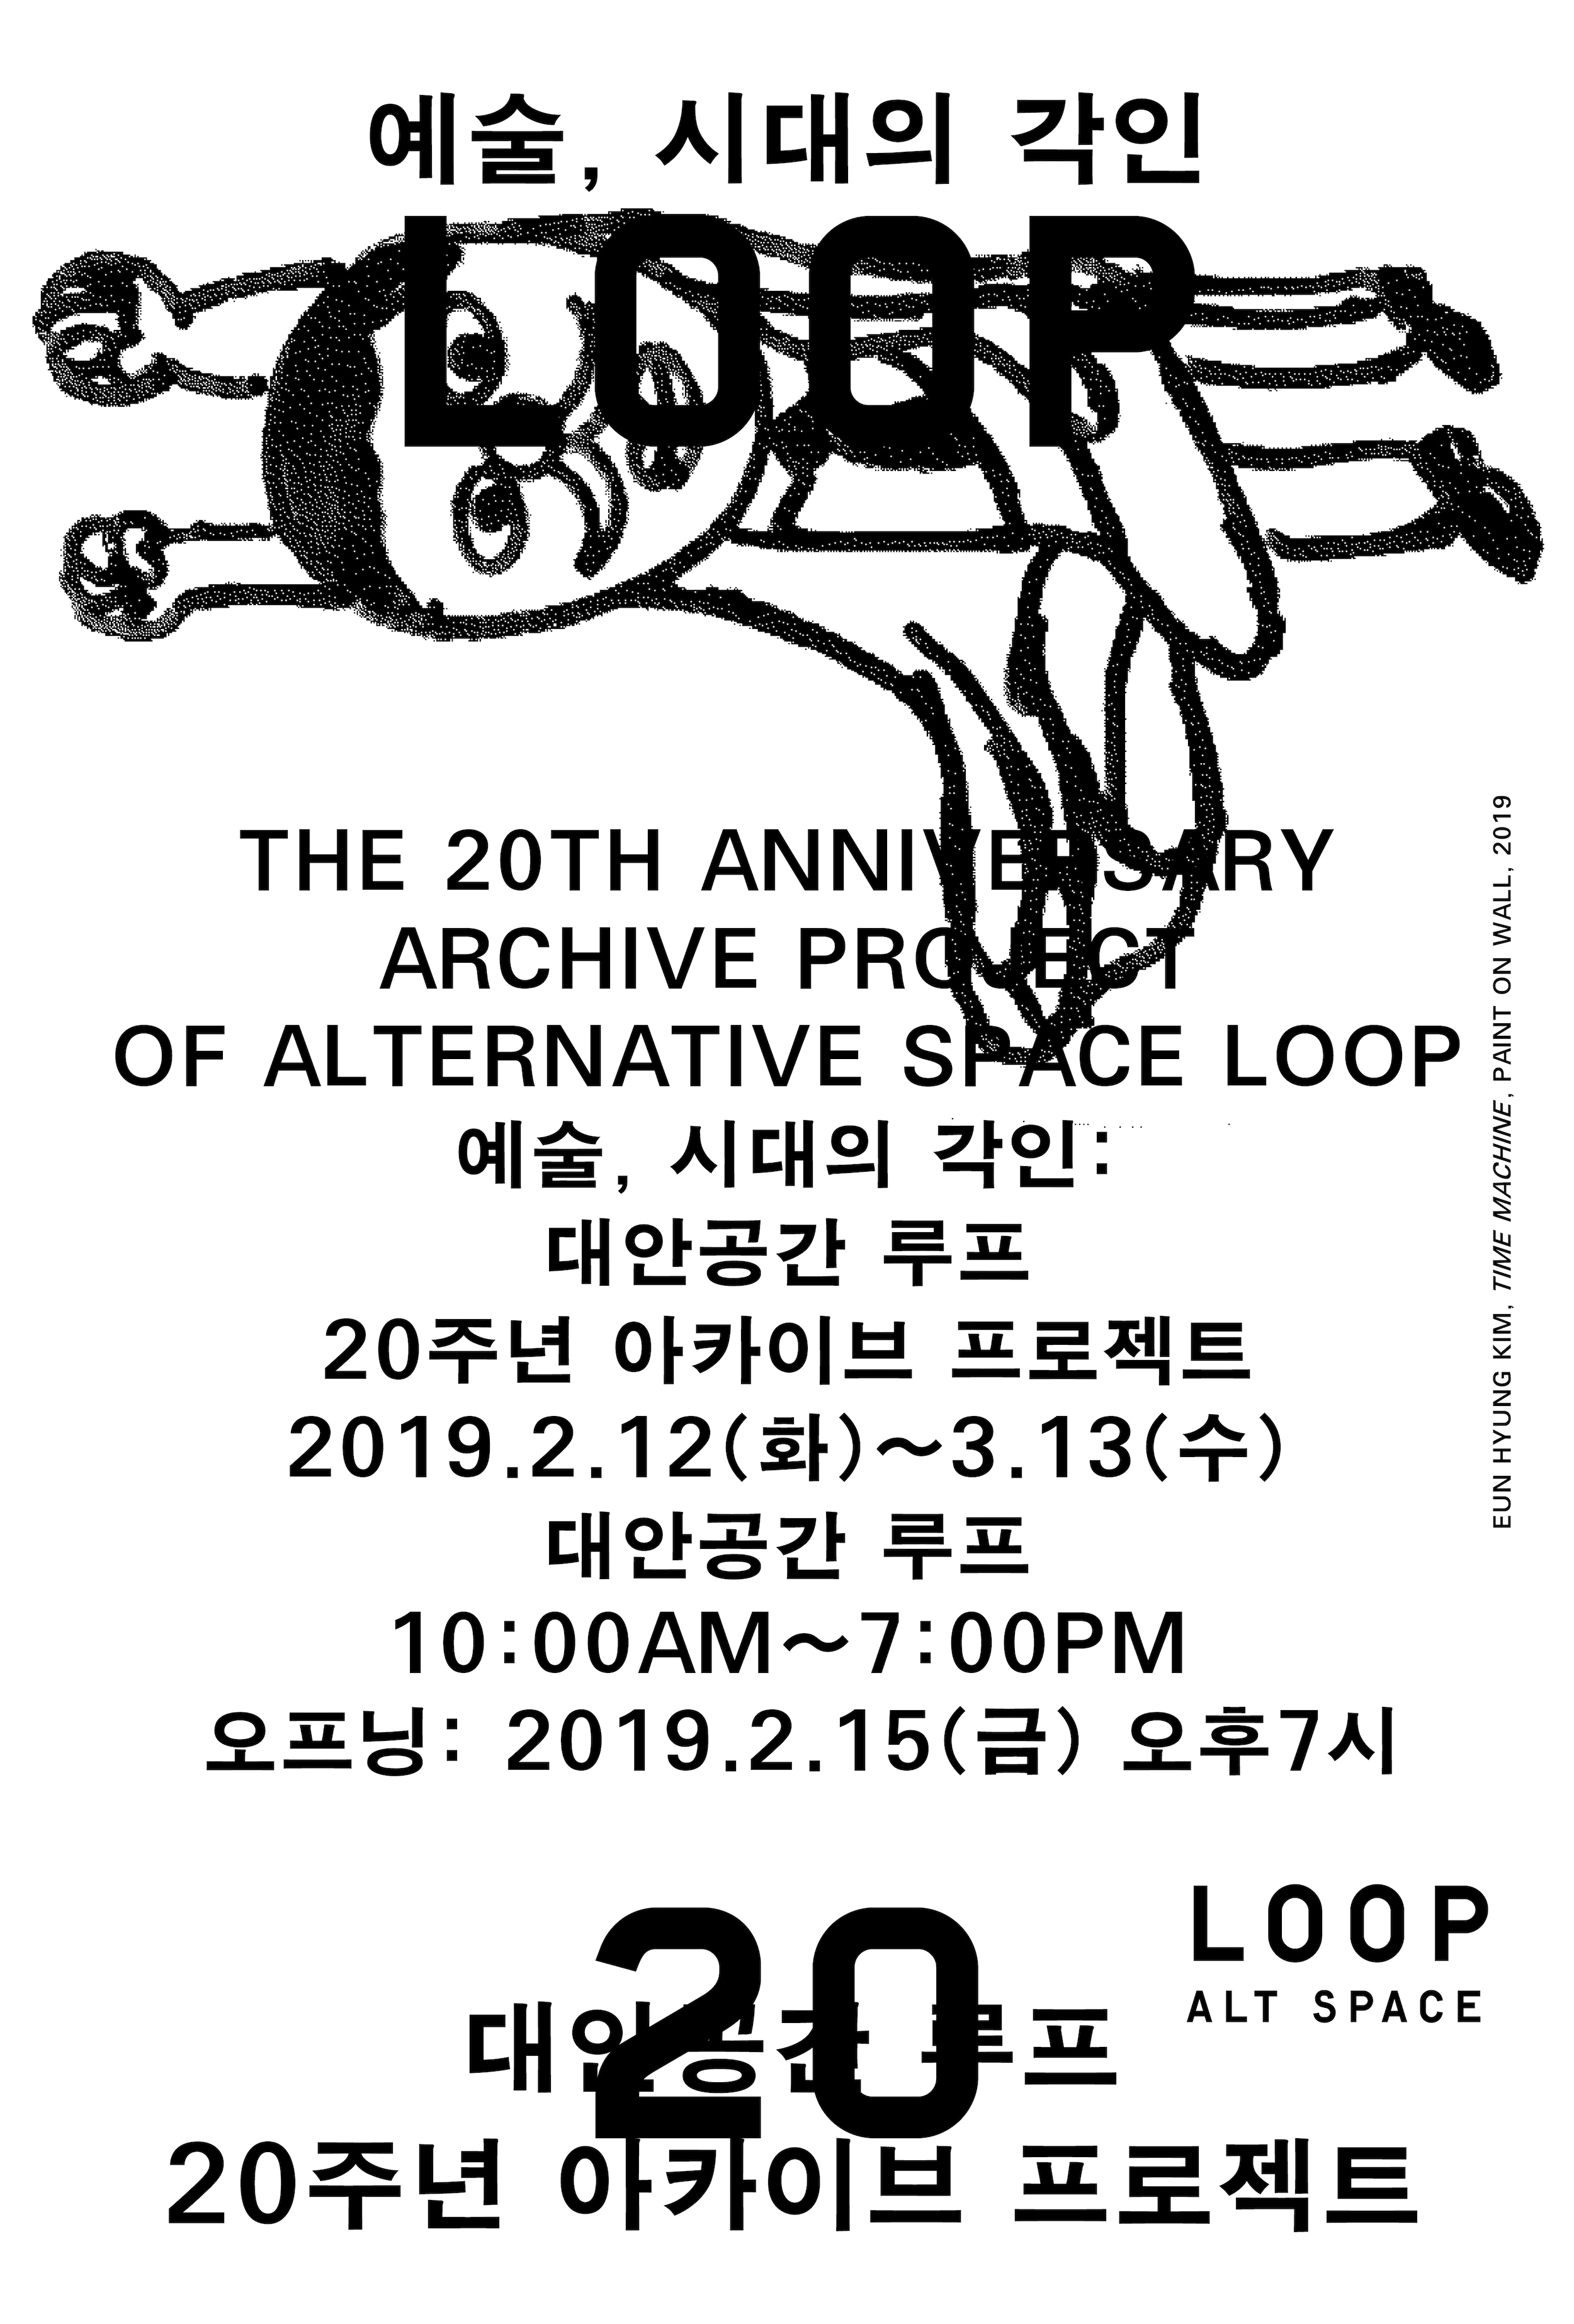 The 20th Anniversary Archive Project of Alternative Space LOOP